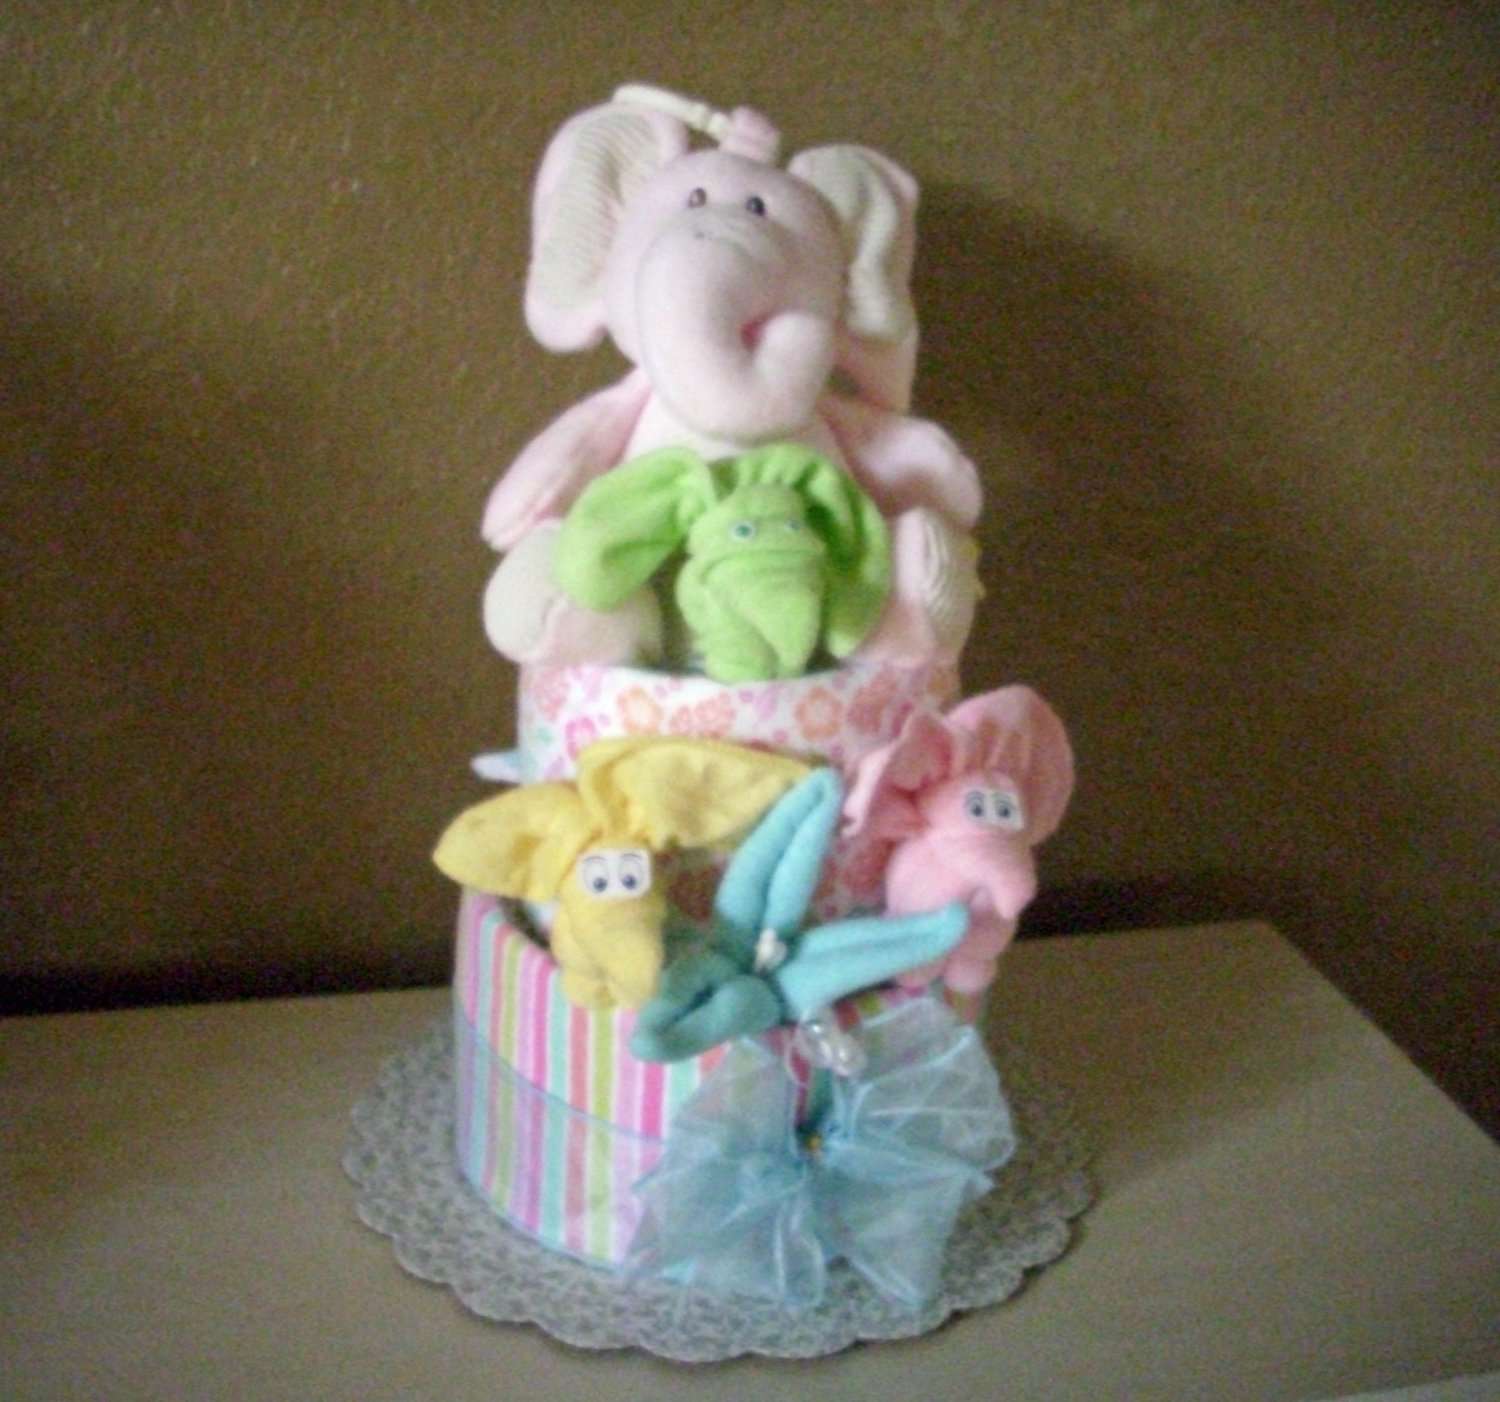 Elephant Girl Diaper Cake, Just a must to see! Adorable